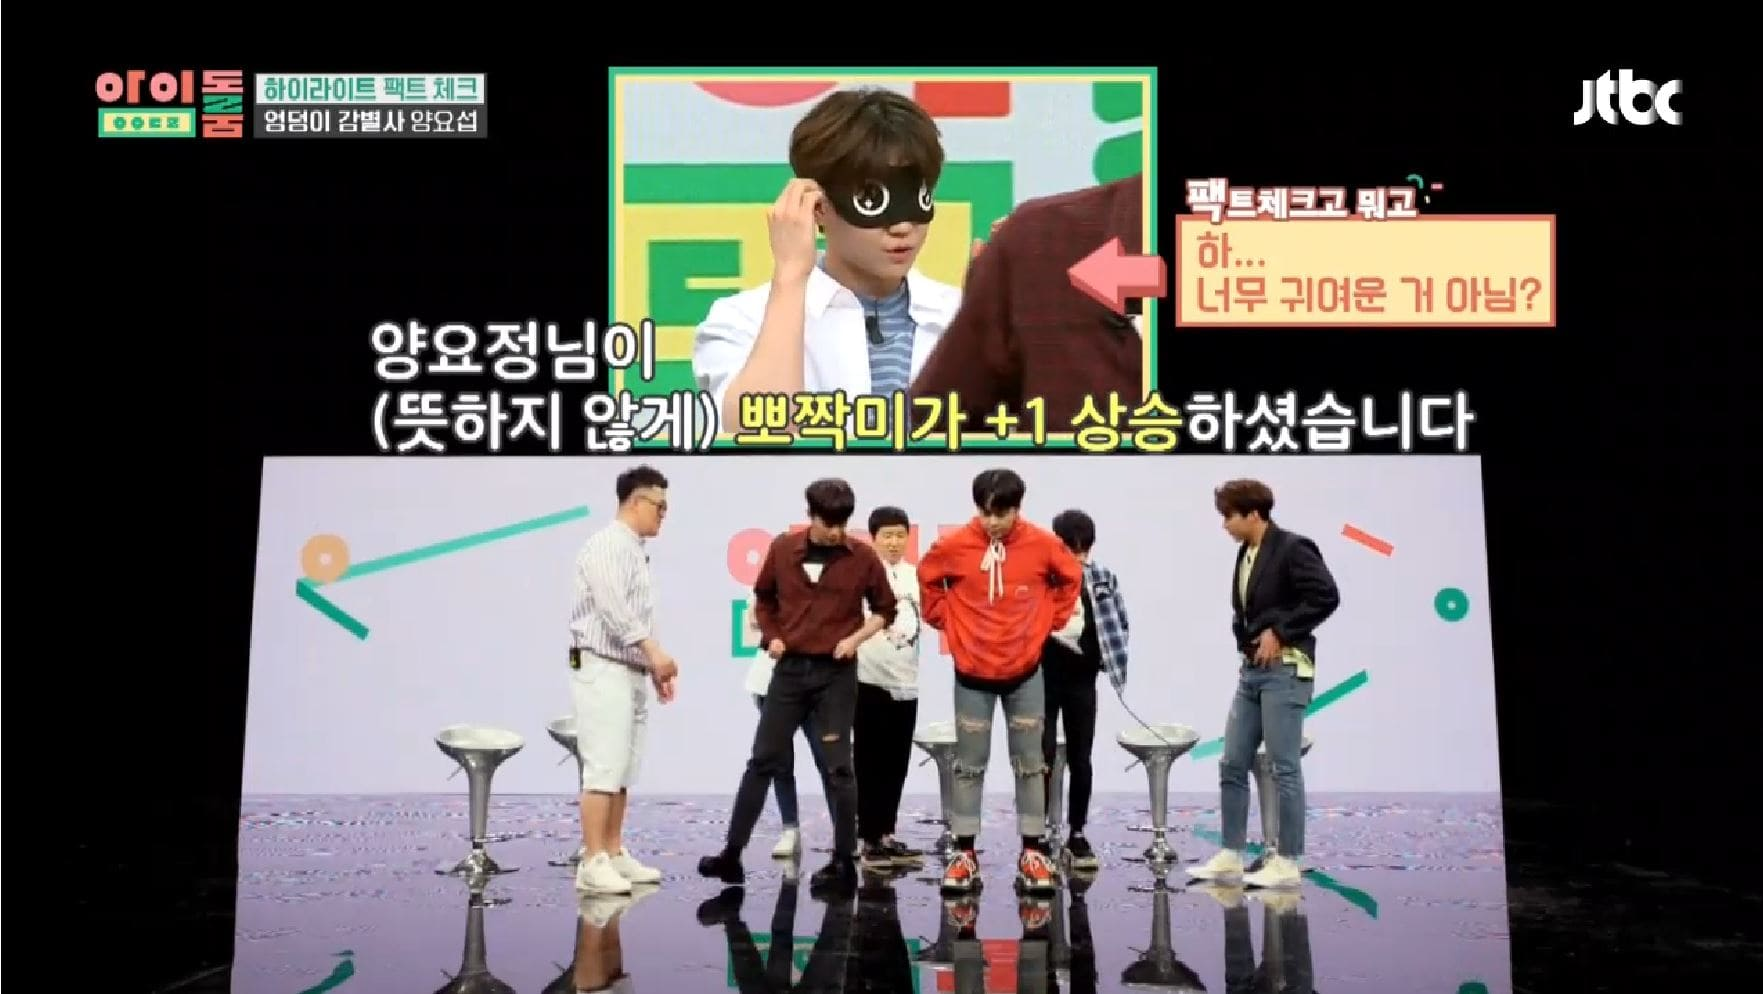 e3e856ff263b3 After wearing a blindfold, Yoseob was directed to where his members were  standing in line. However, the first in line was actually Jung Hyung Don  and not a ...